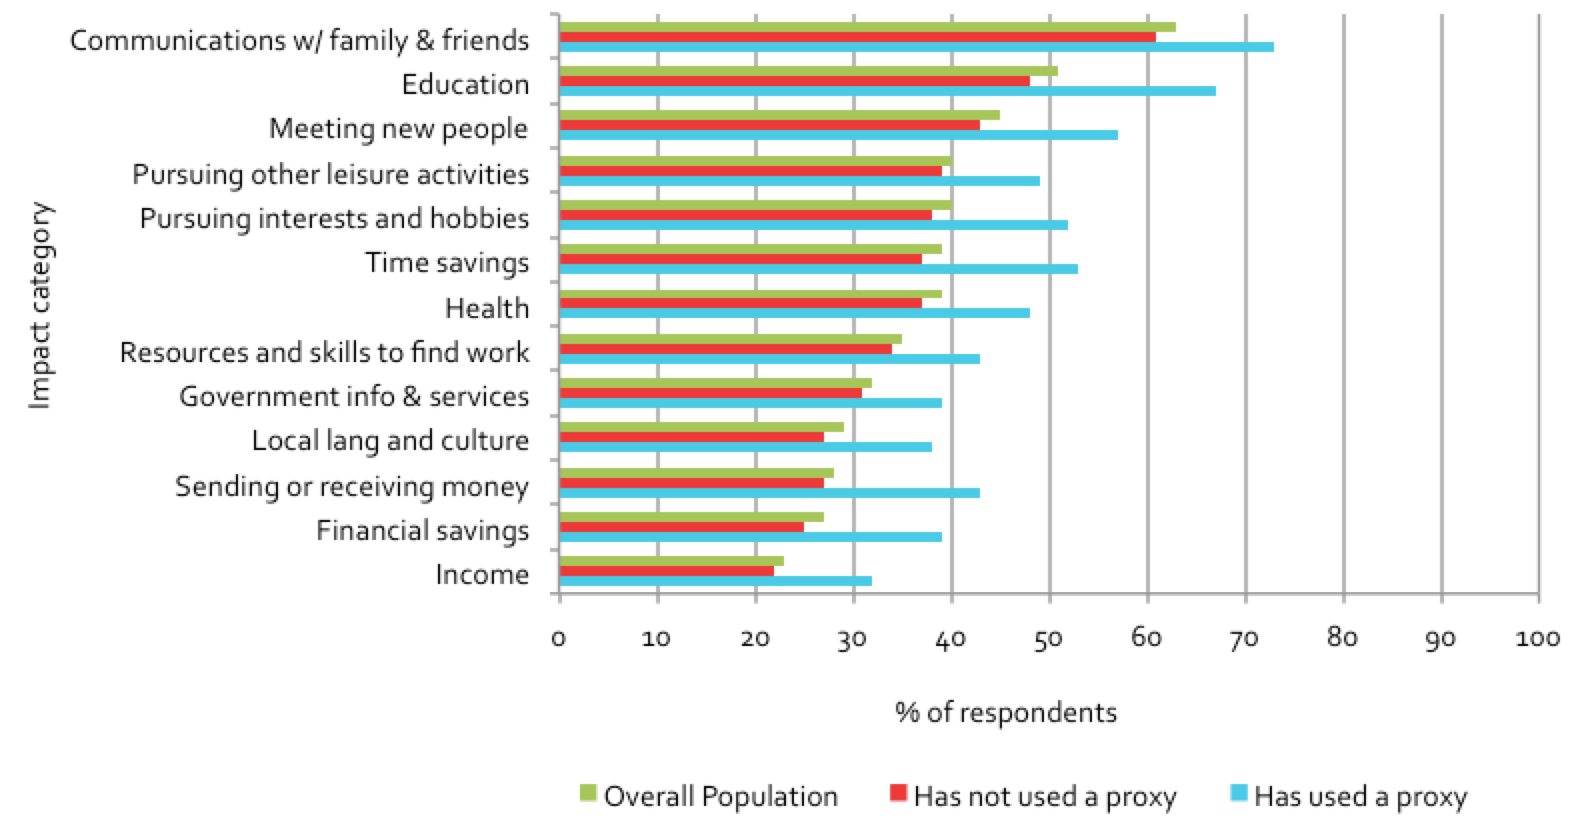 Figure 6.8: Impacts of public access venues perceived by non-users, grouped by proxy use